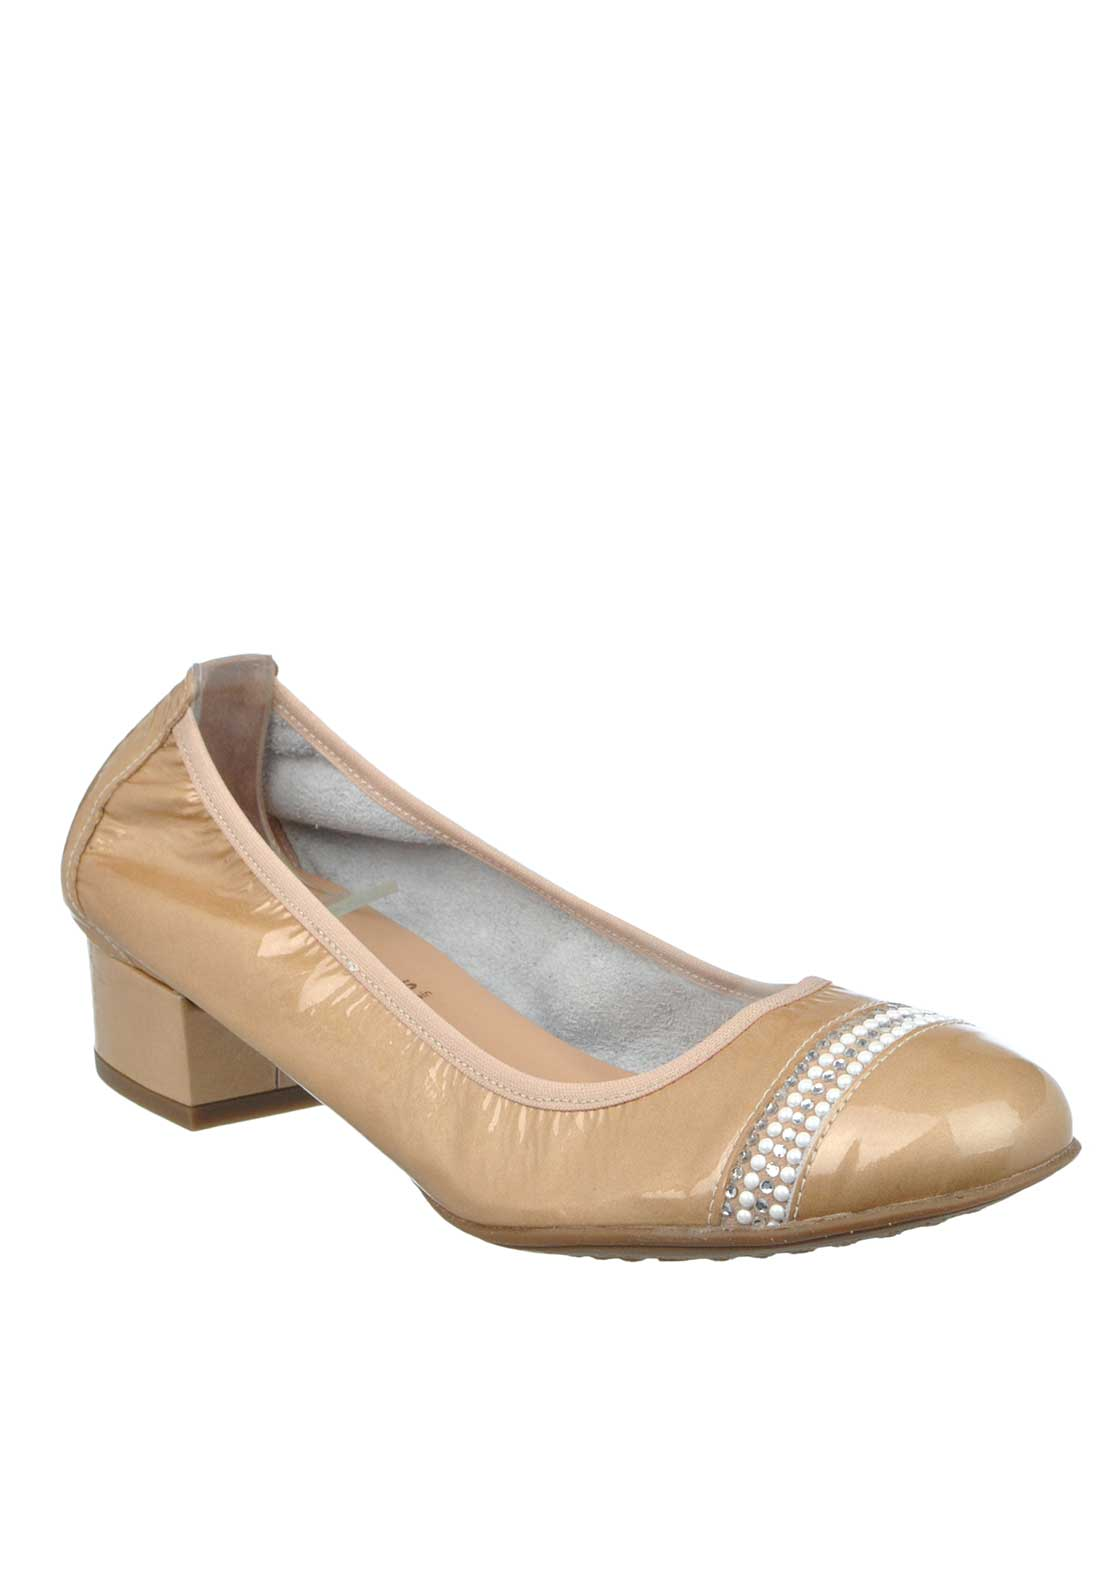 Wonders Patent Leather Embellished Heeled Pumps, Caramel